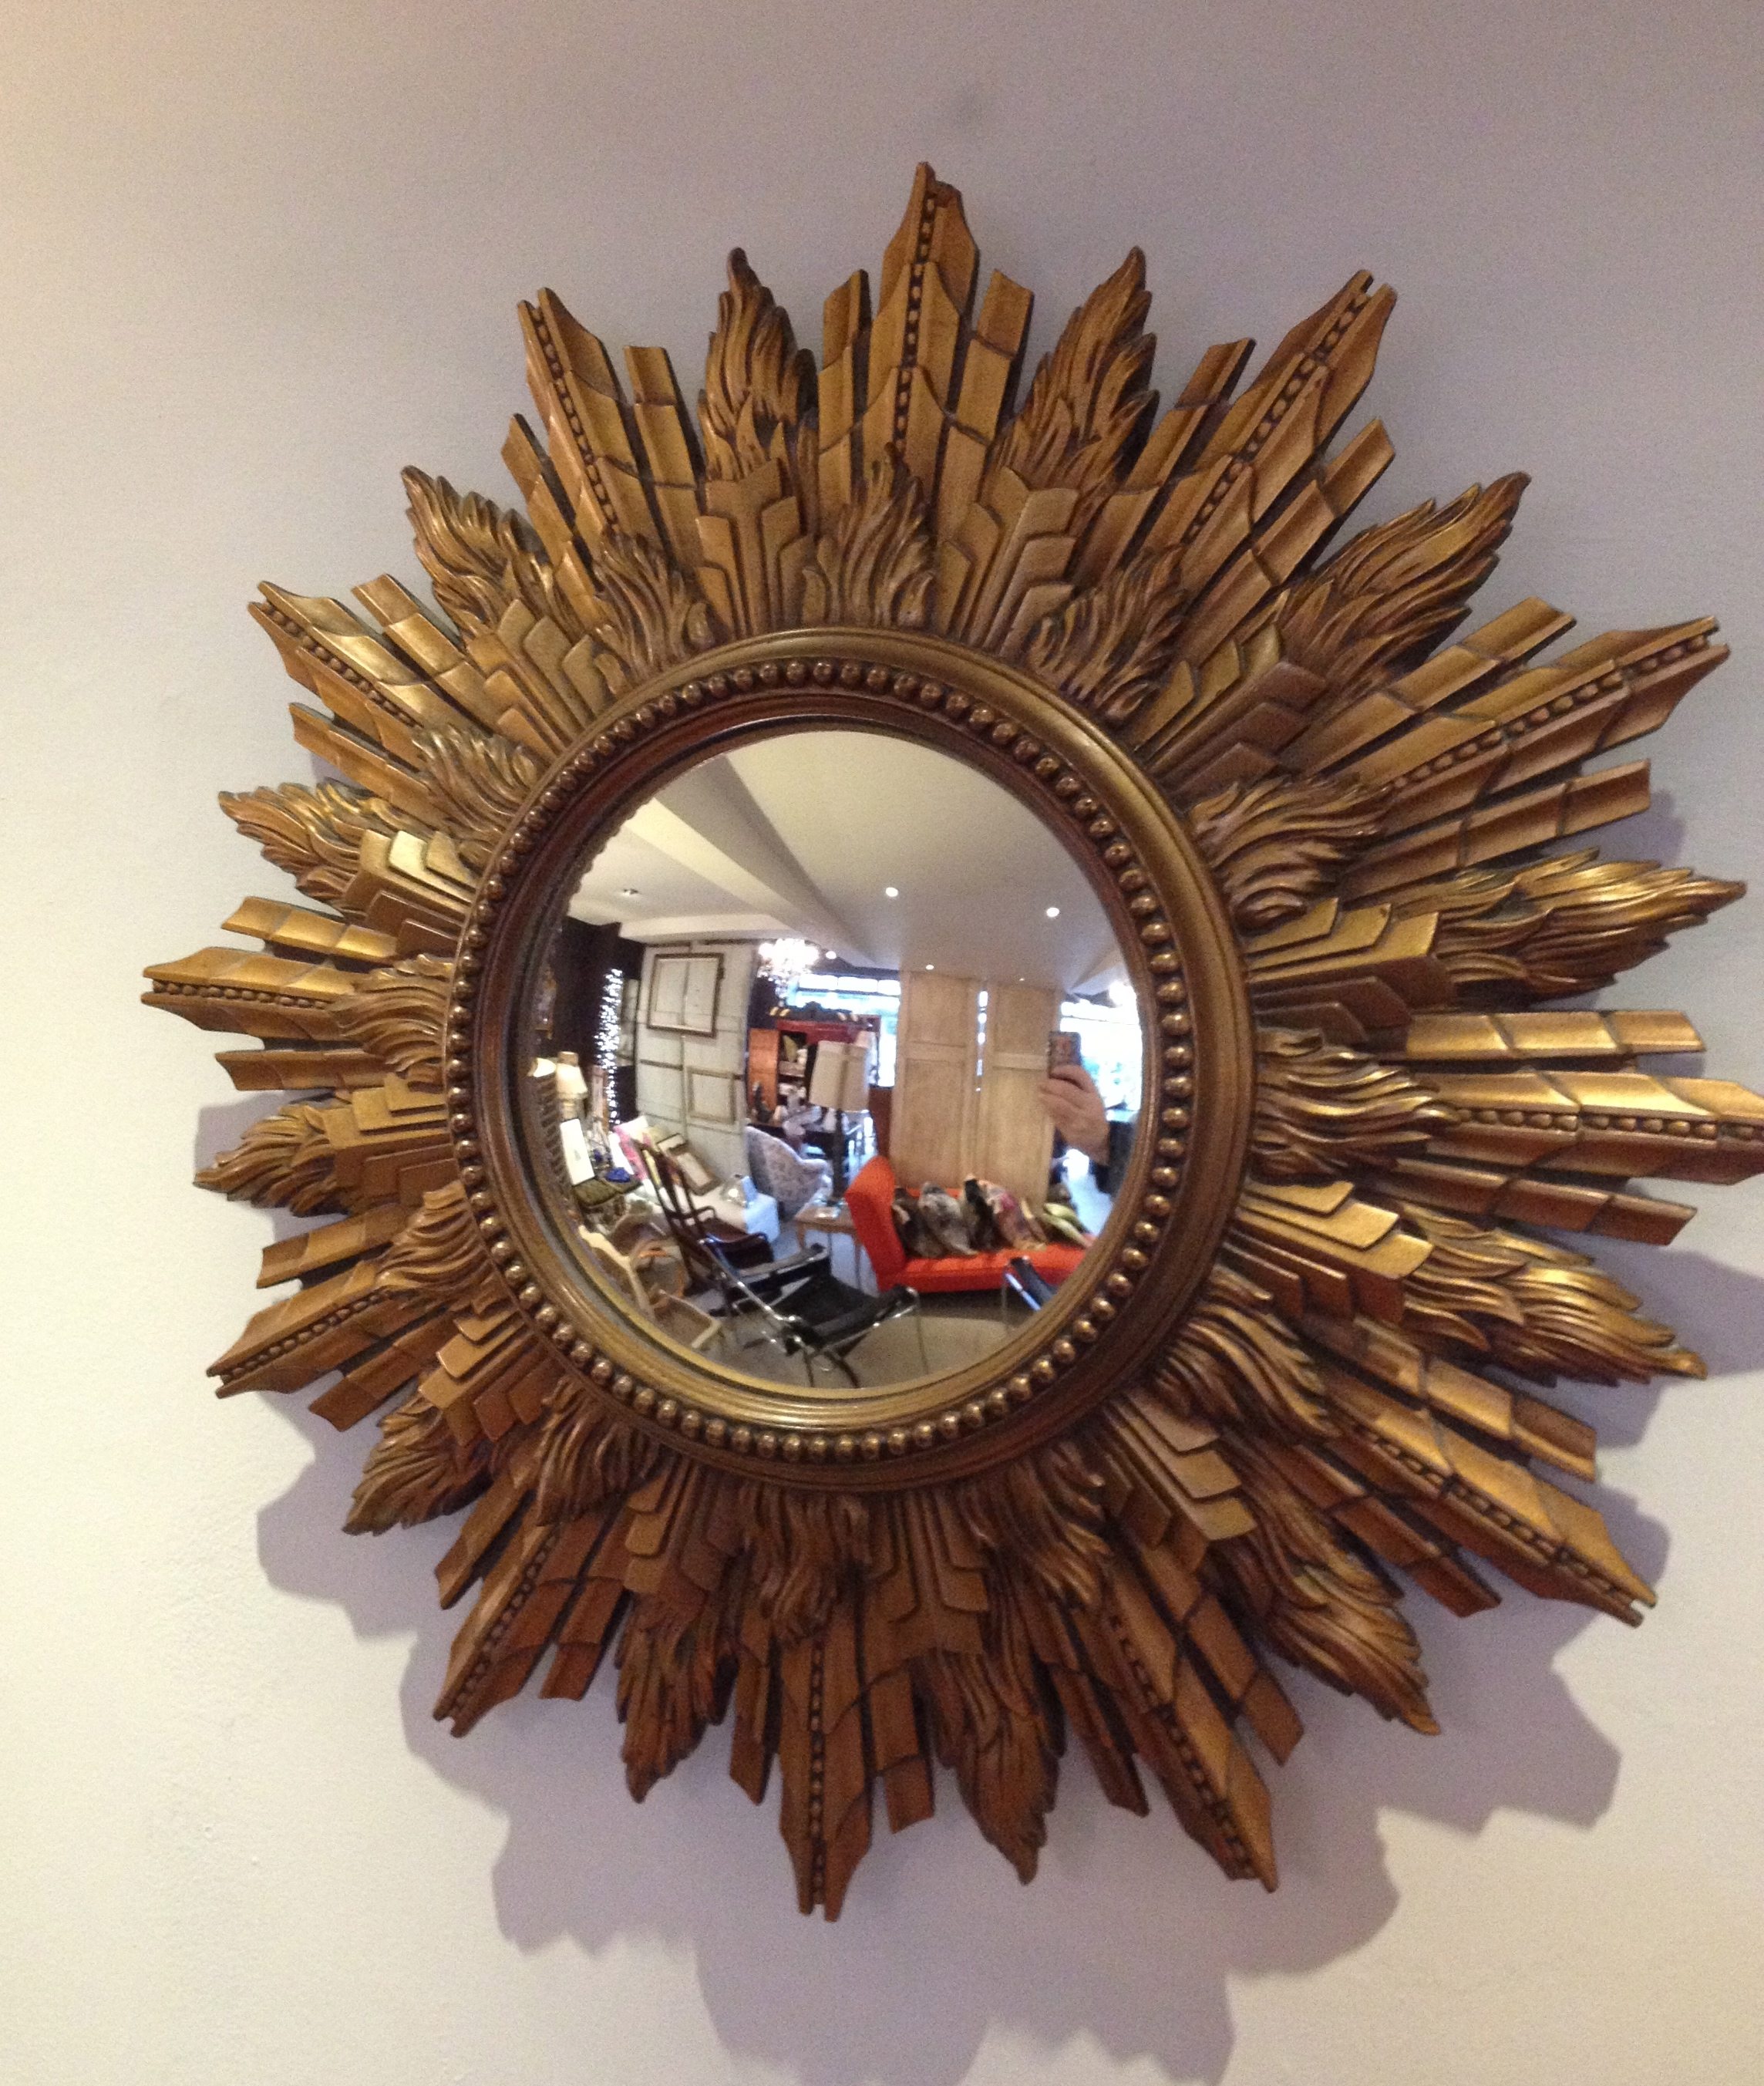 Round Wall Mirrors Decorative Inarace Pertaining To Large Sunburst Mirrors For Sale (Image 8 of 15)